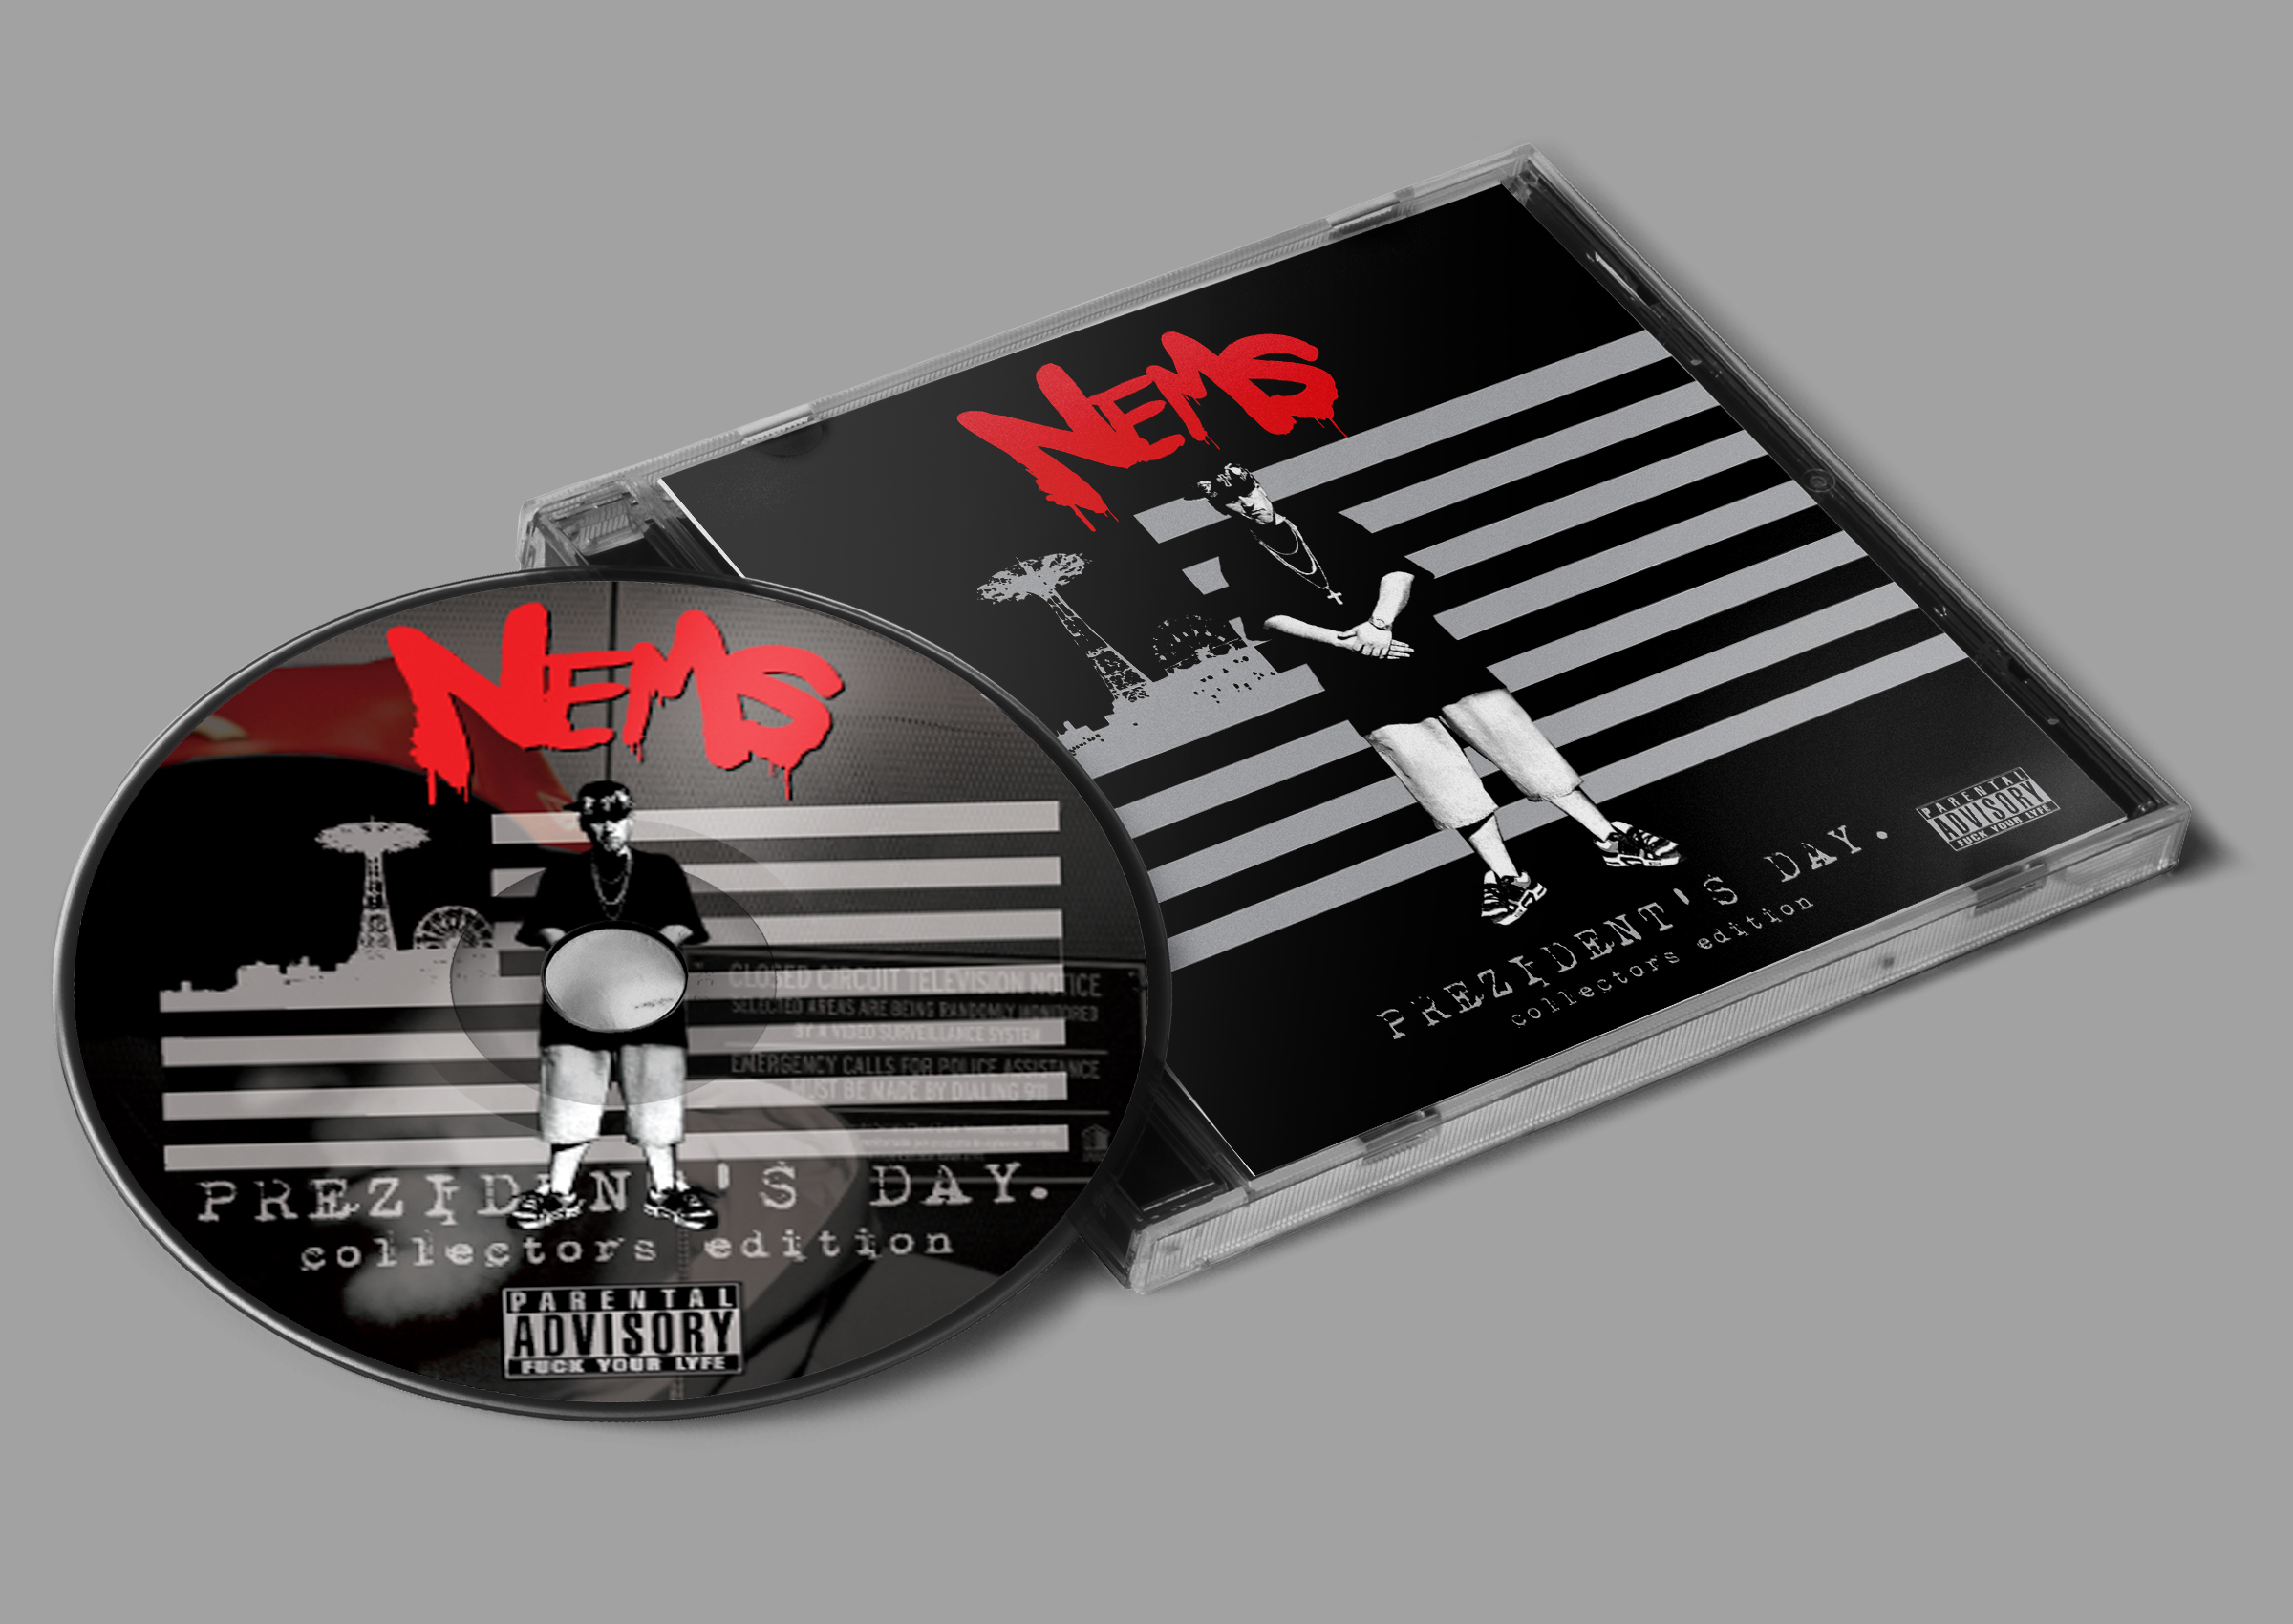 Nems - Prezidents Day Collectors Edition double CD